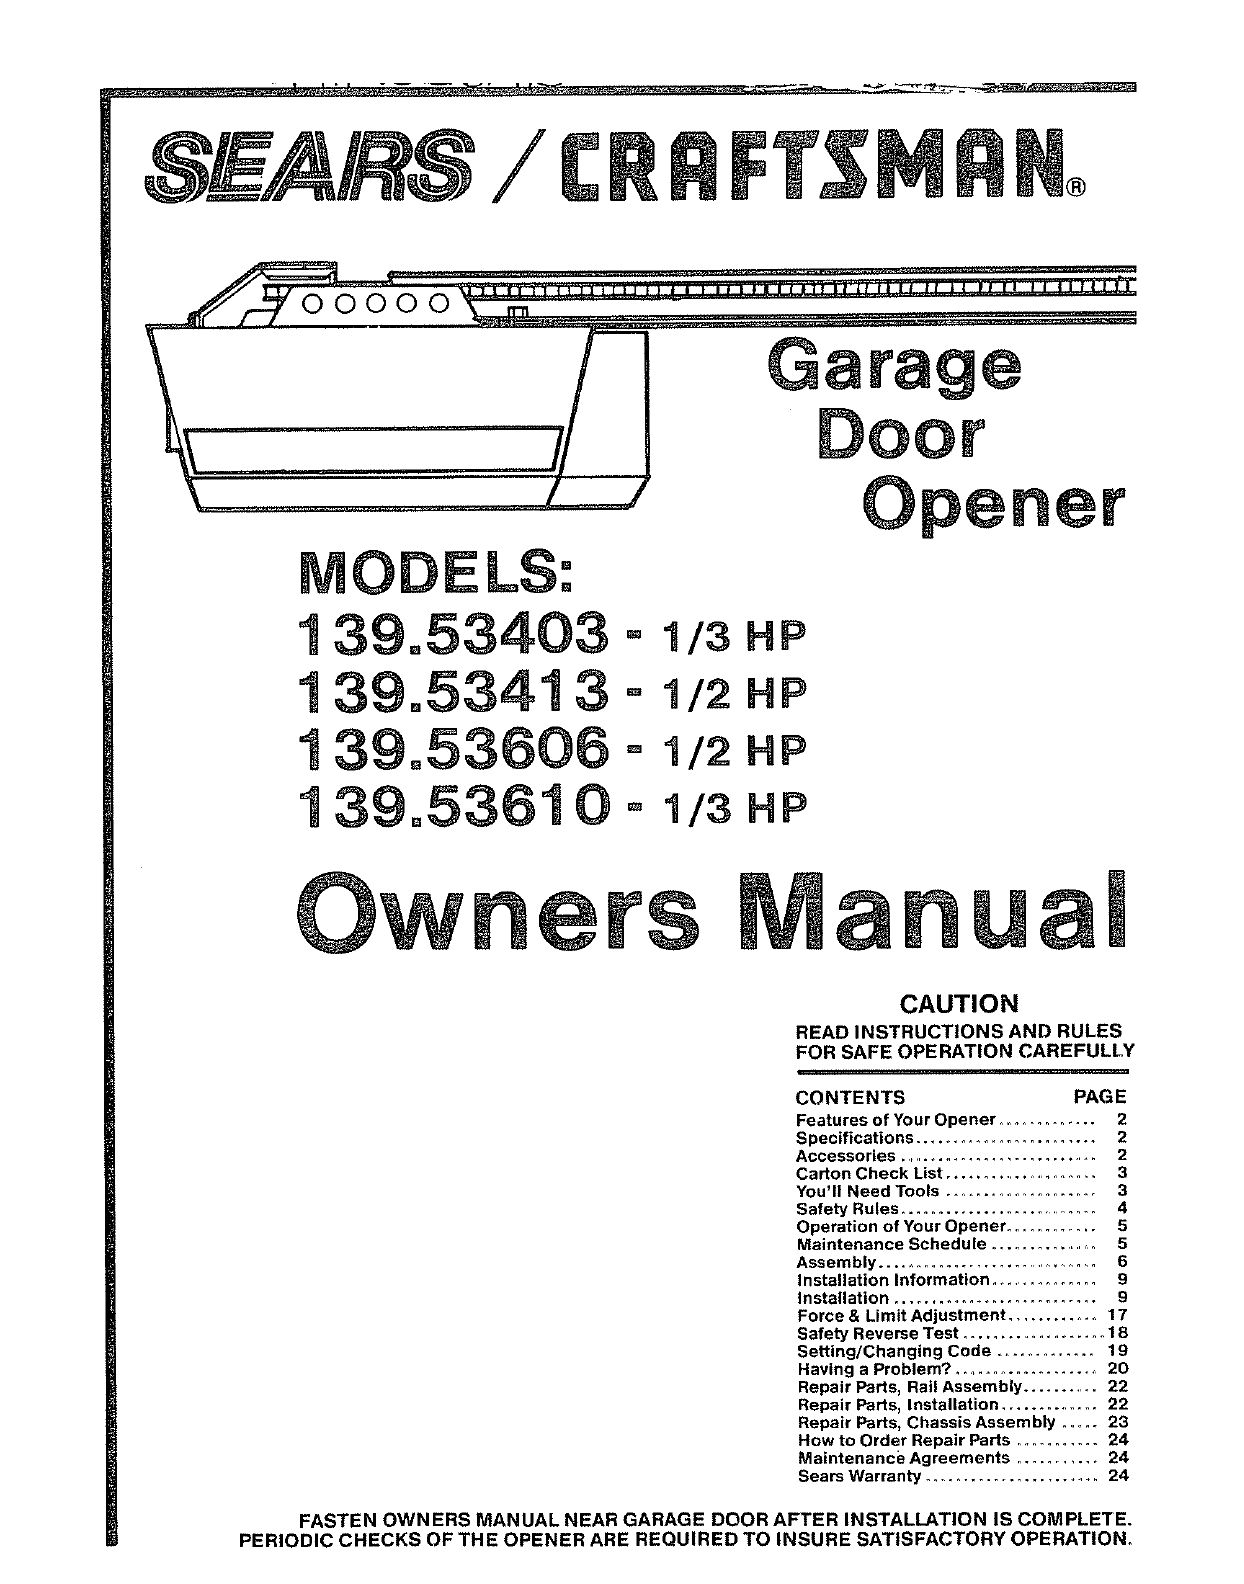 Craftsman 1 2 hp garage door opener wiring diagram regarding craftsman 1 2 hp garage door opener wiring diagram regarding motivate asfbconference2016 Images